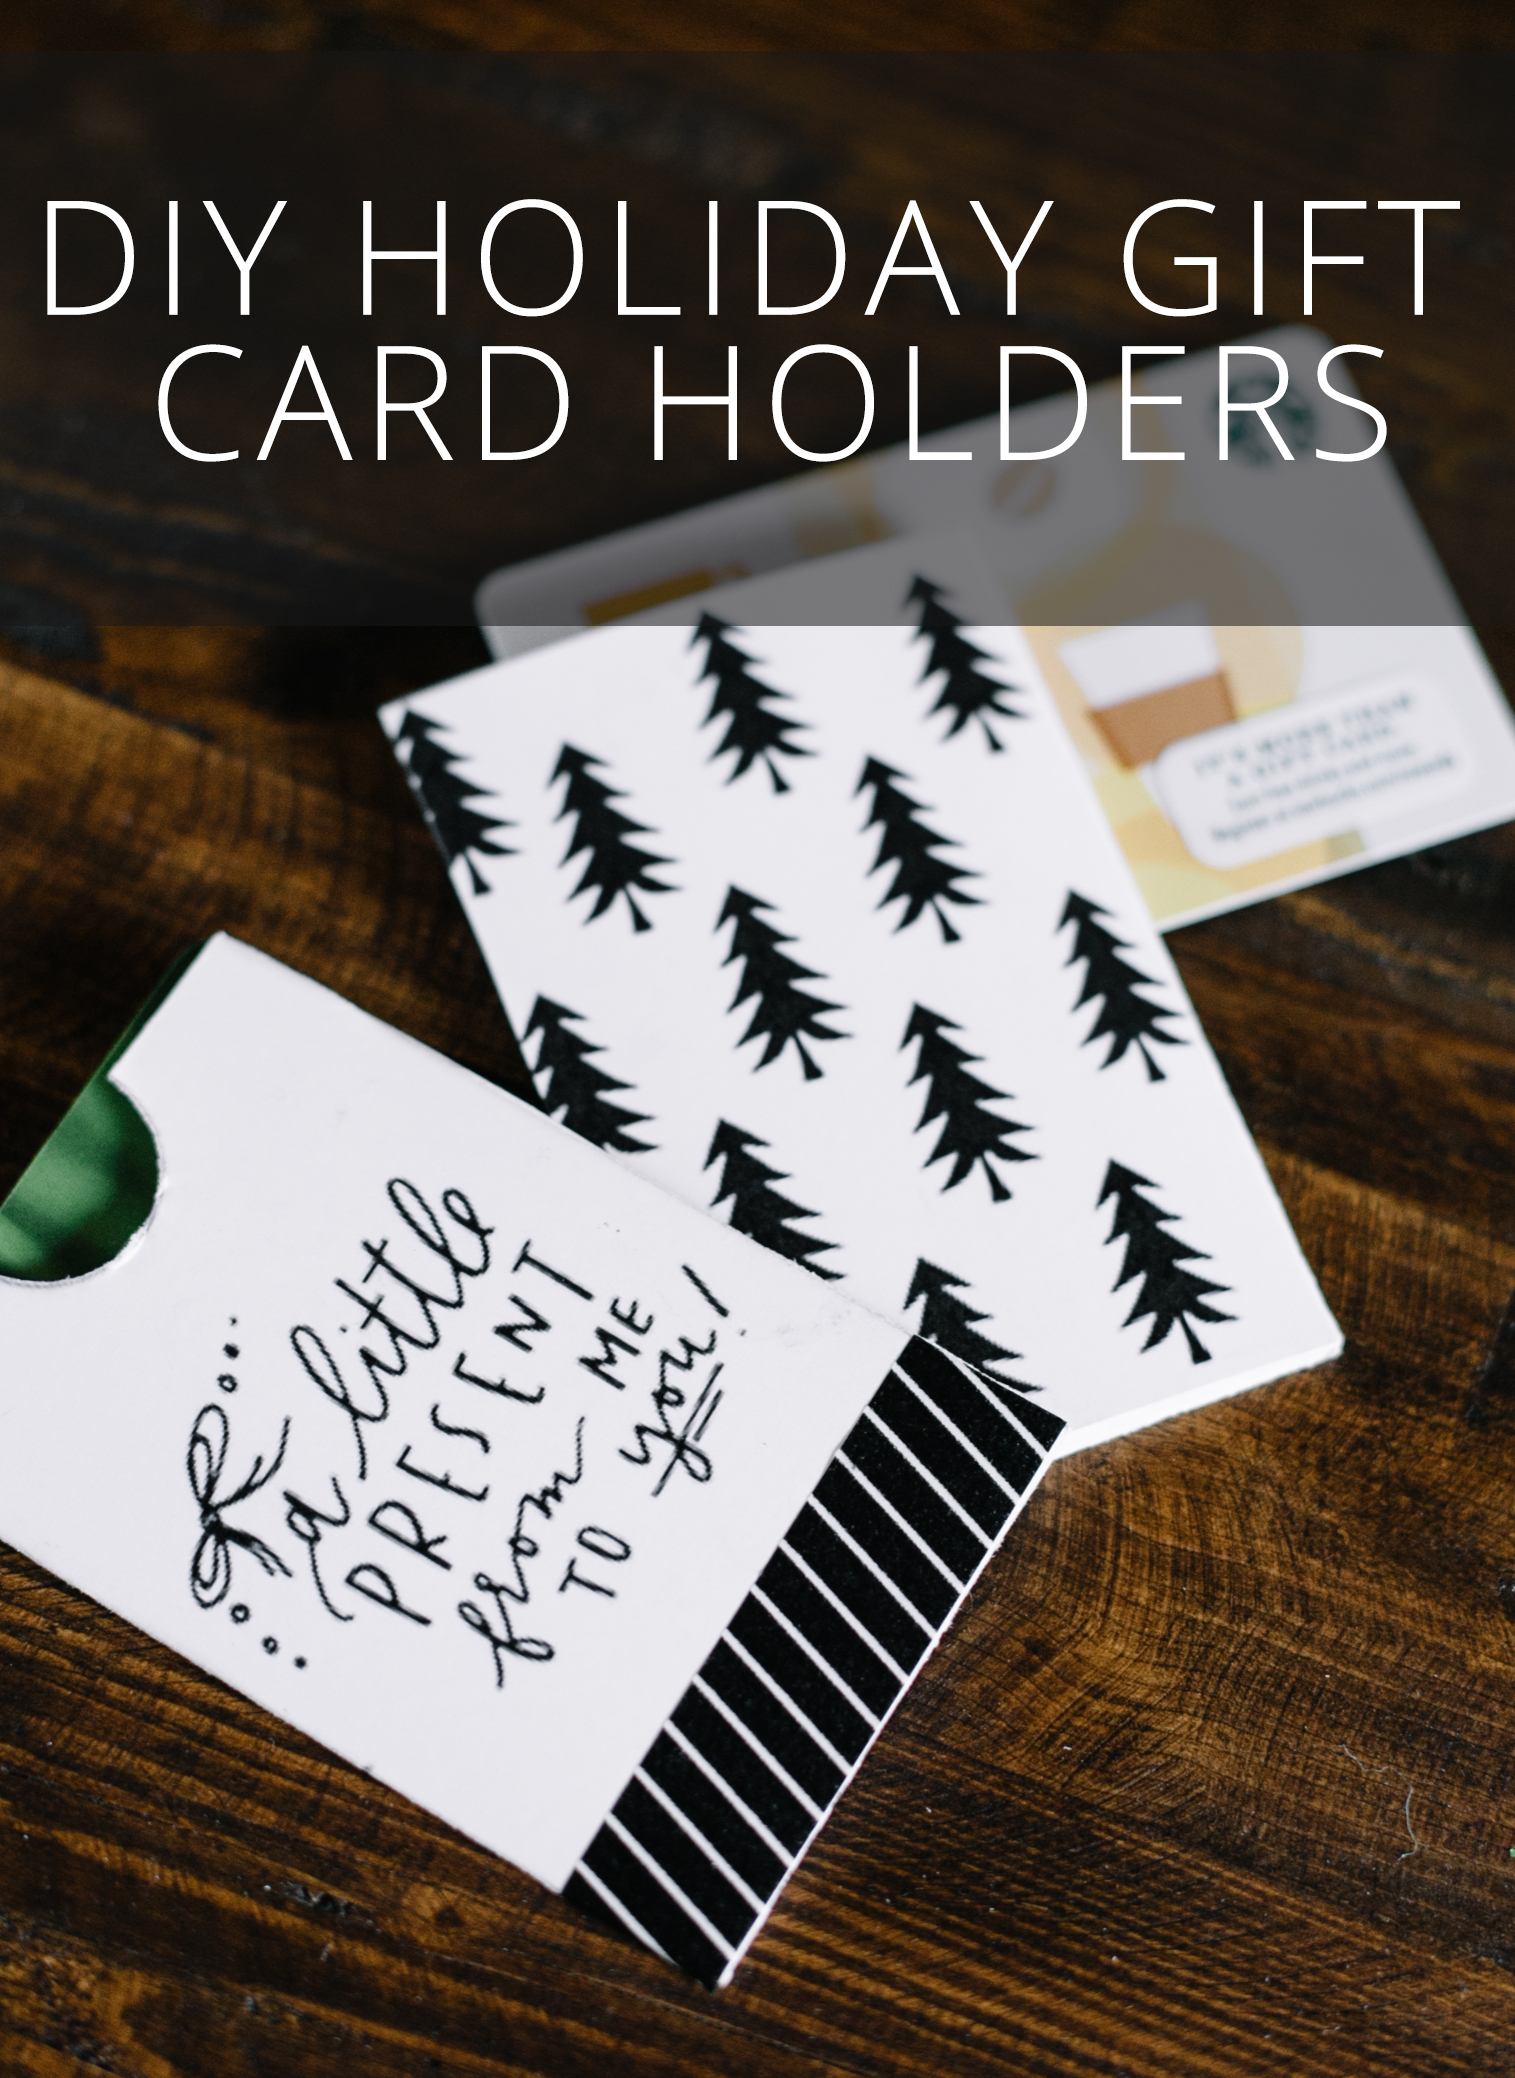 DIY Holiday Gift Card Holders from Eleven and West